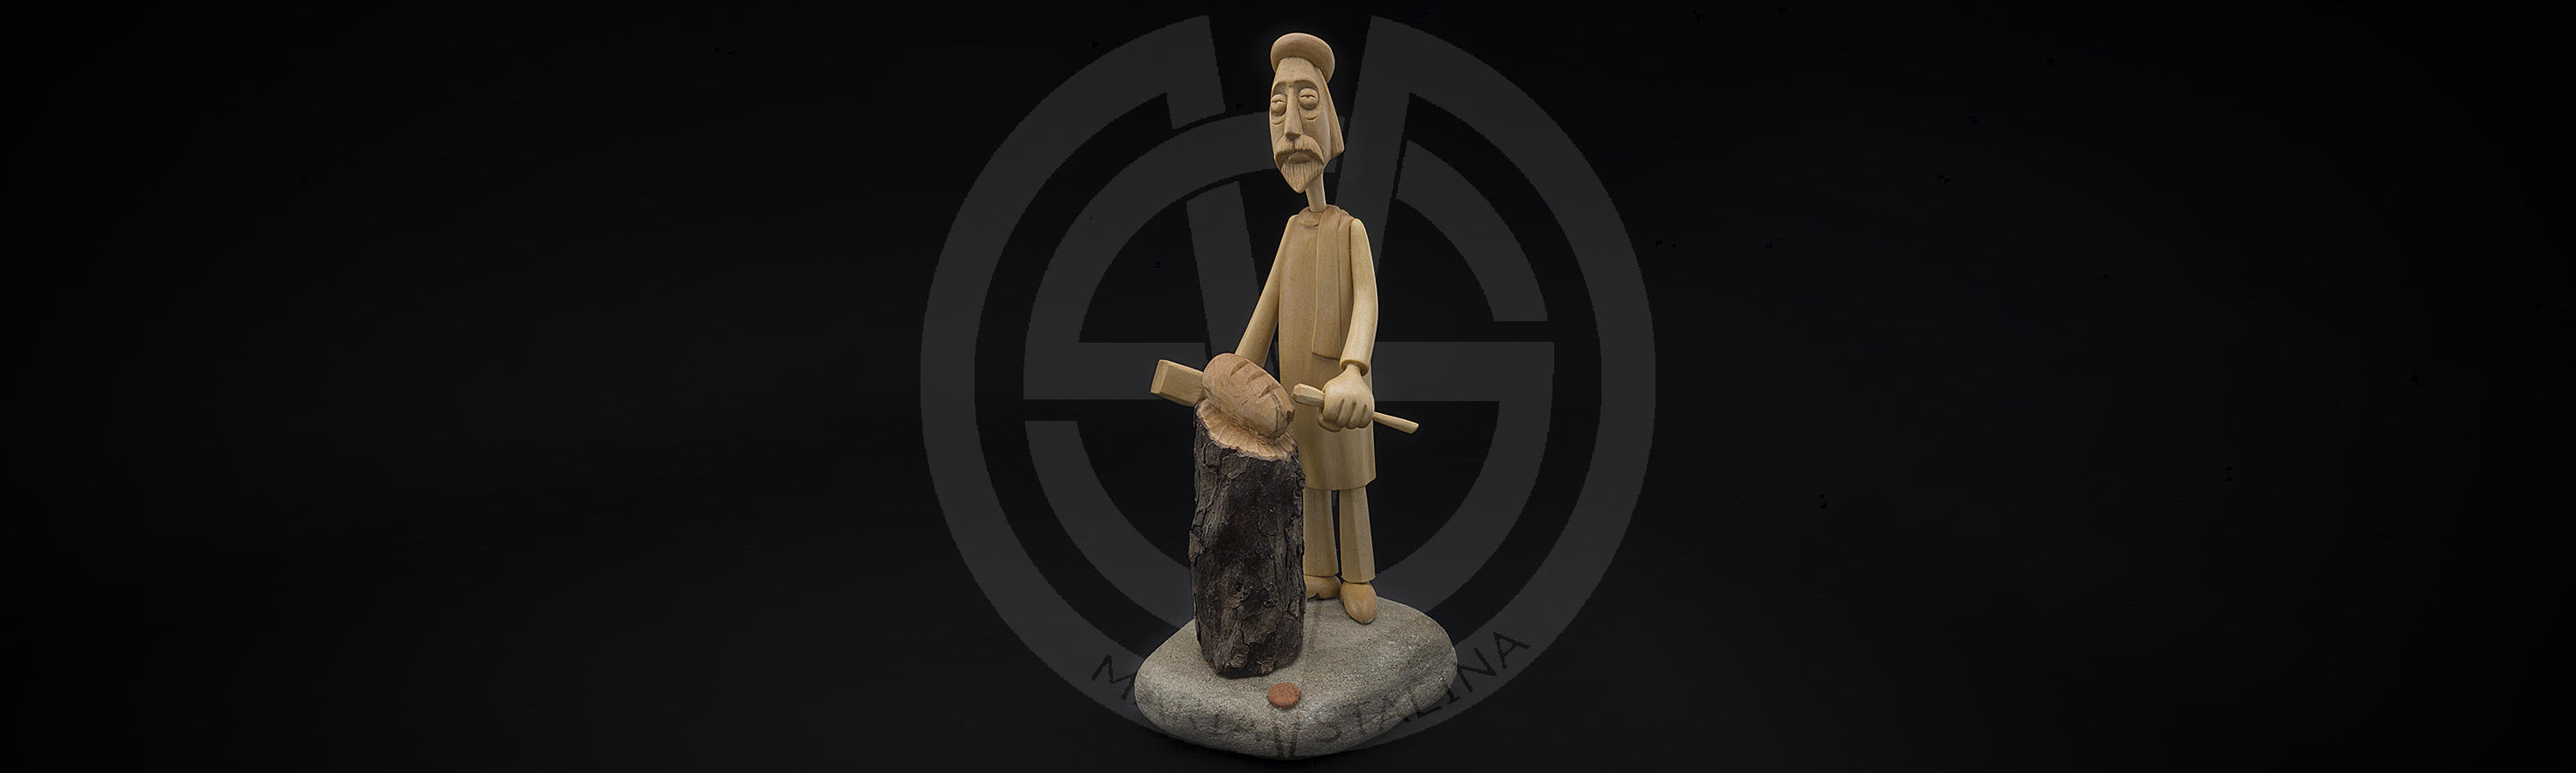 Custom wooden statuette